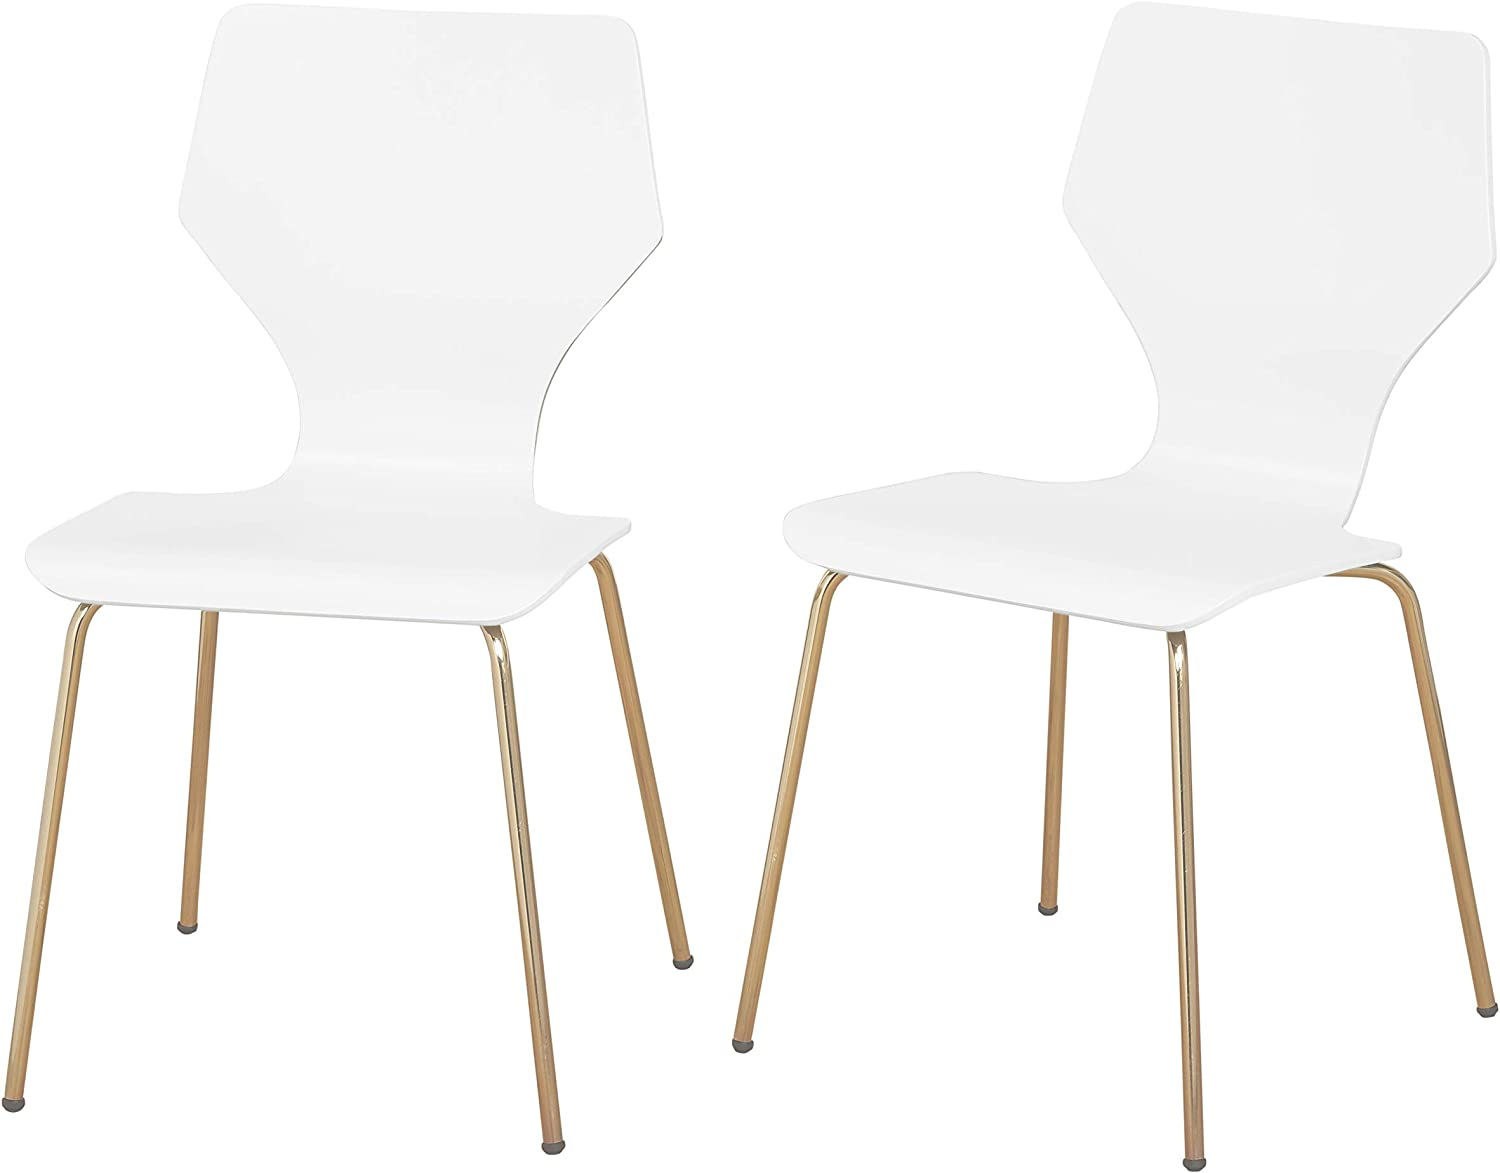 Angelo Home Enna Mid Century Bentwood Seat Dining Chair With Metal Legs Set Of 2 White Chairs Amazon Com